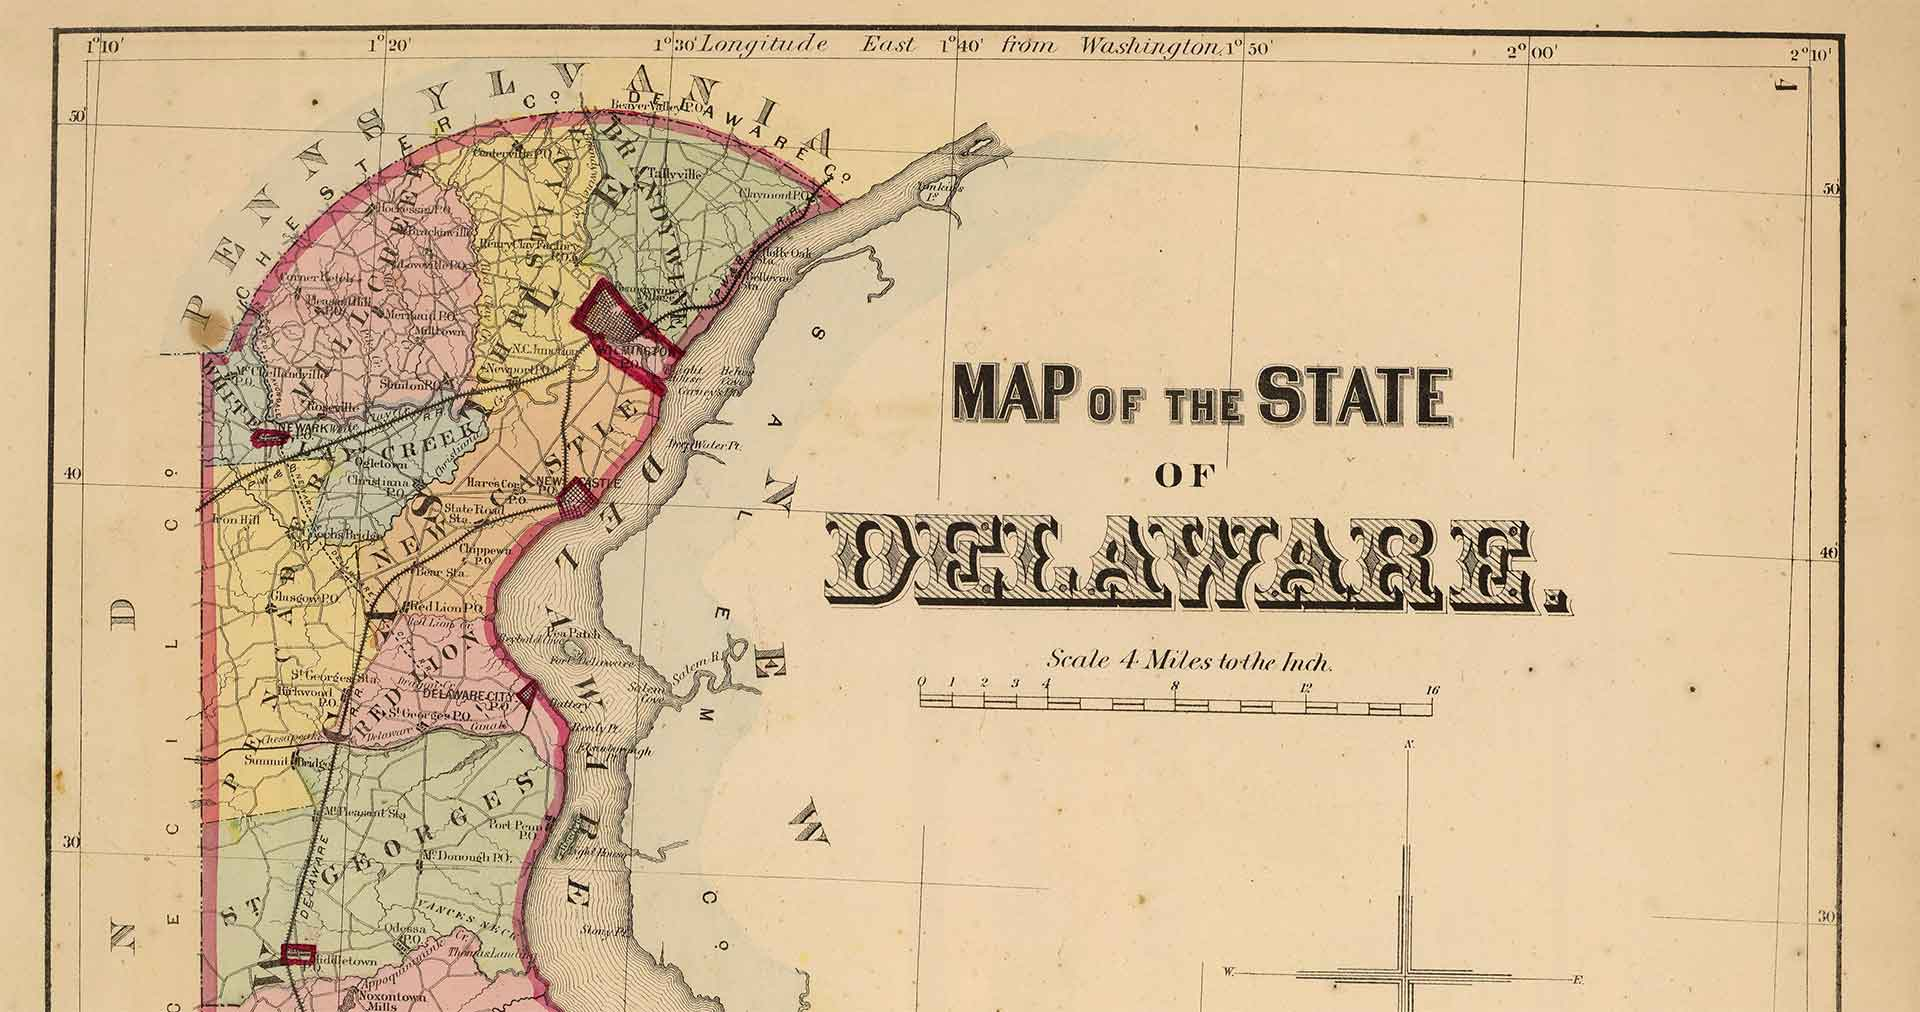 Old Historical City, County and State Maps of Delaware on delaware florida map, delaware senate district map, delaware colleges and universities map, delaware school districts map, delaware cities map, delaware weather map, delaware road map, delaware airports map, delaware flag map, delaware states map, delaware water map, delaware tourism map, delaware county, delaware state counties, delaware rivers map, delaware on map, delaware mountains map, delaware economy map, delaware towns map, delaware municipalities map,